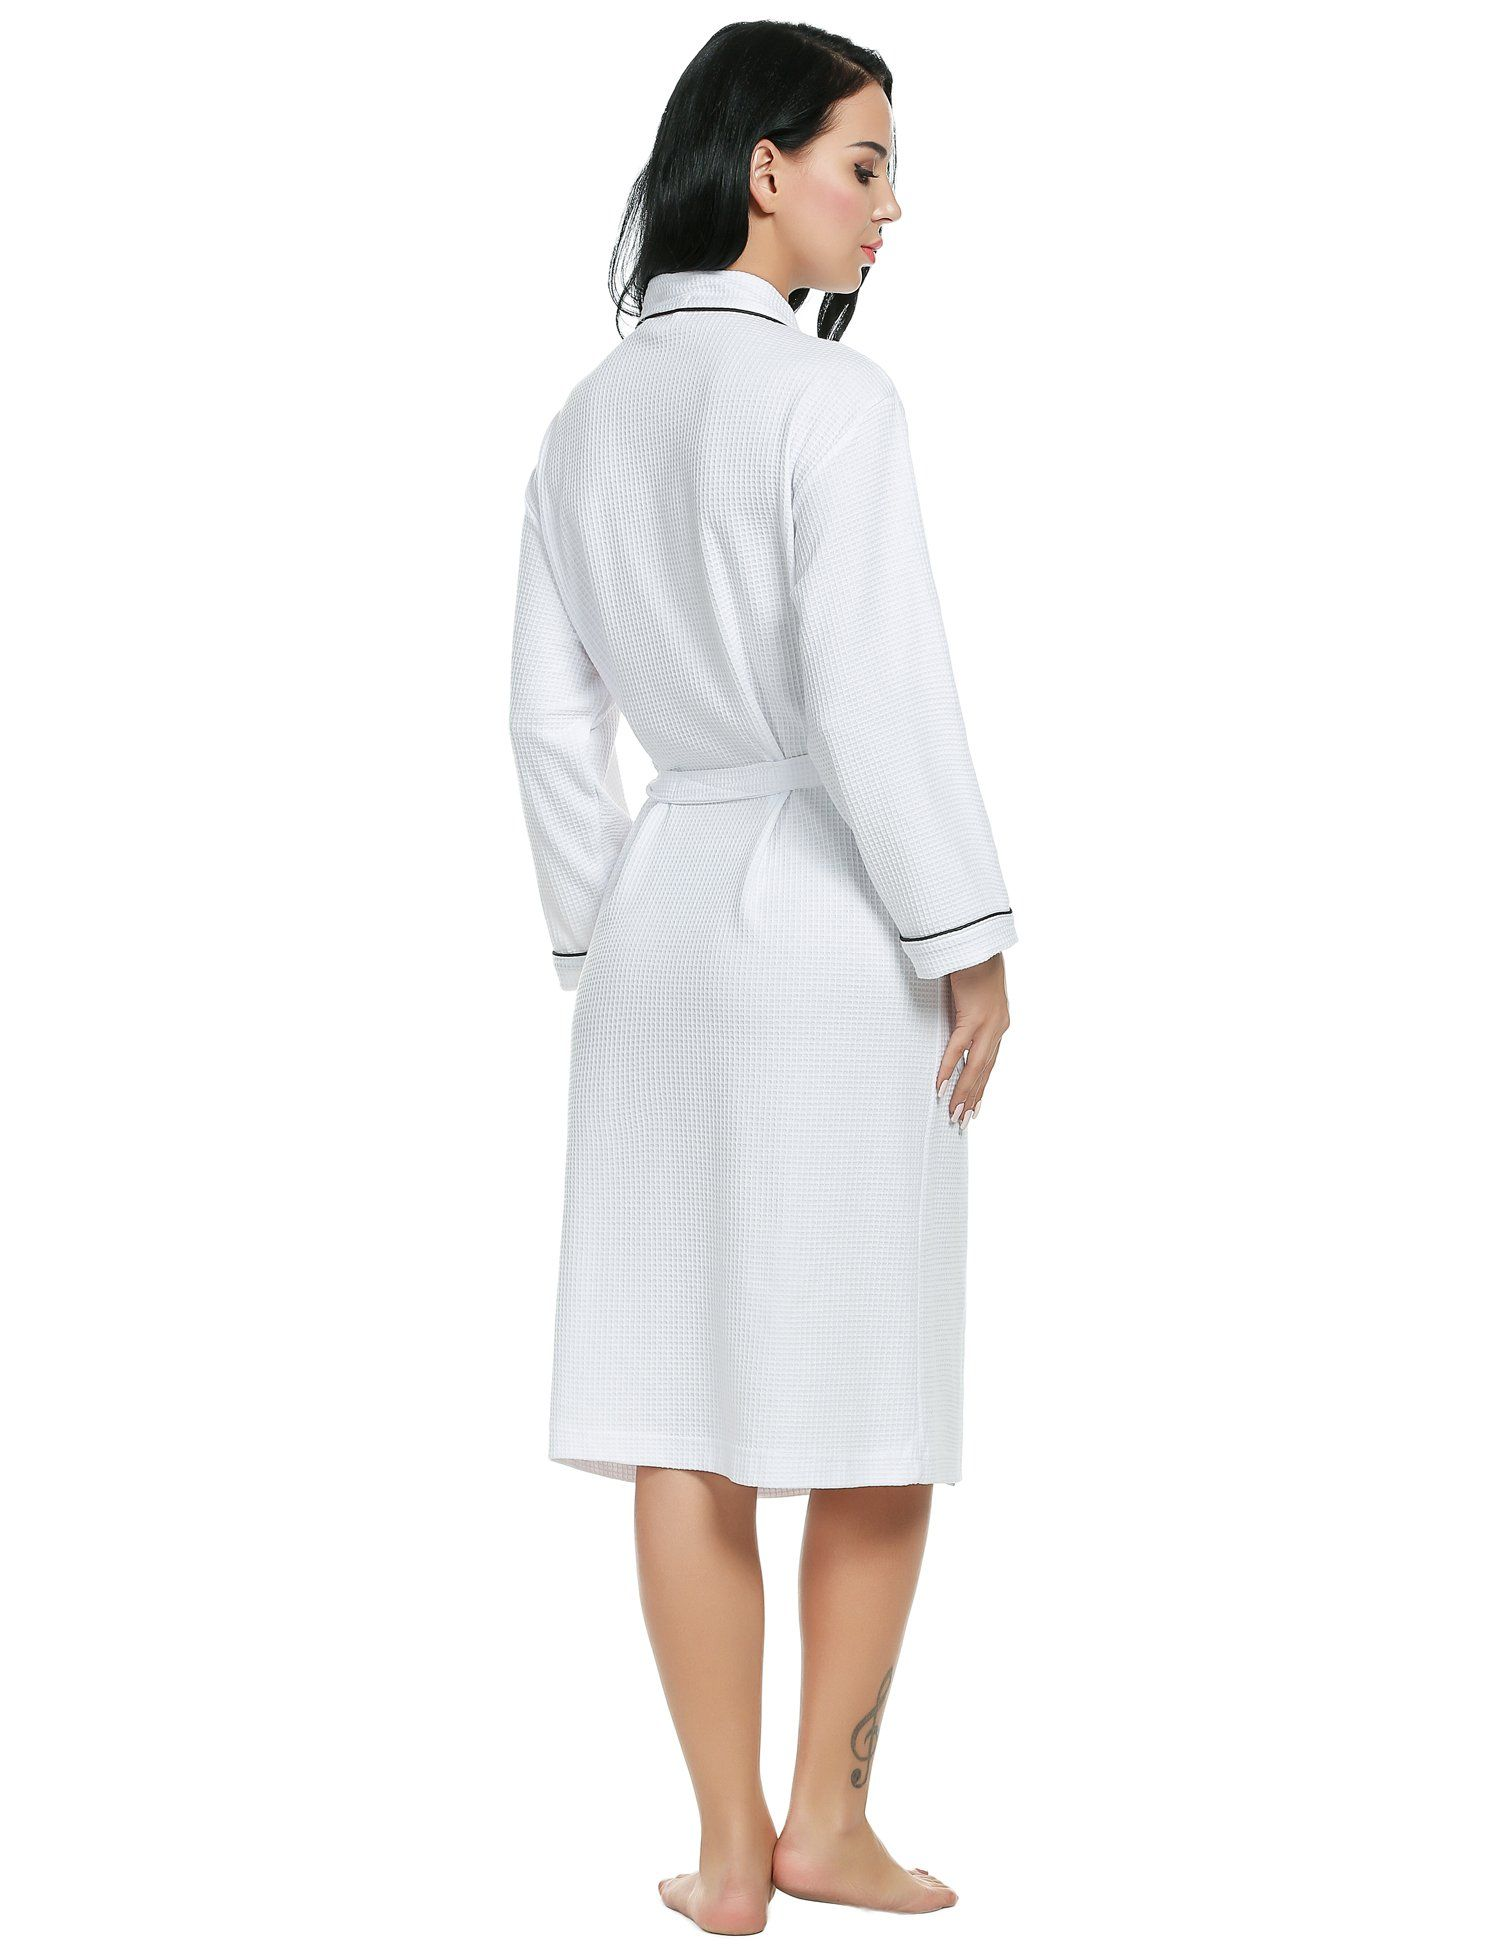 Ekouaer Robes Womens Lightweight Cotton Knit Bathrobe Bridal Lingerie White  Medium    Check this awesome 9ae824320